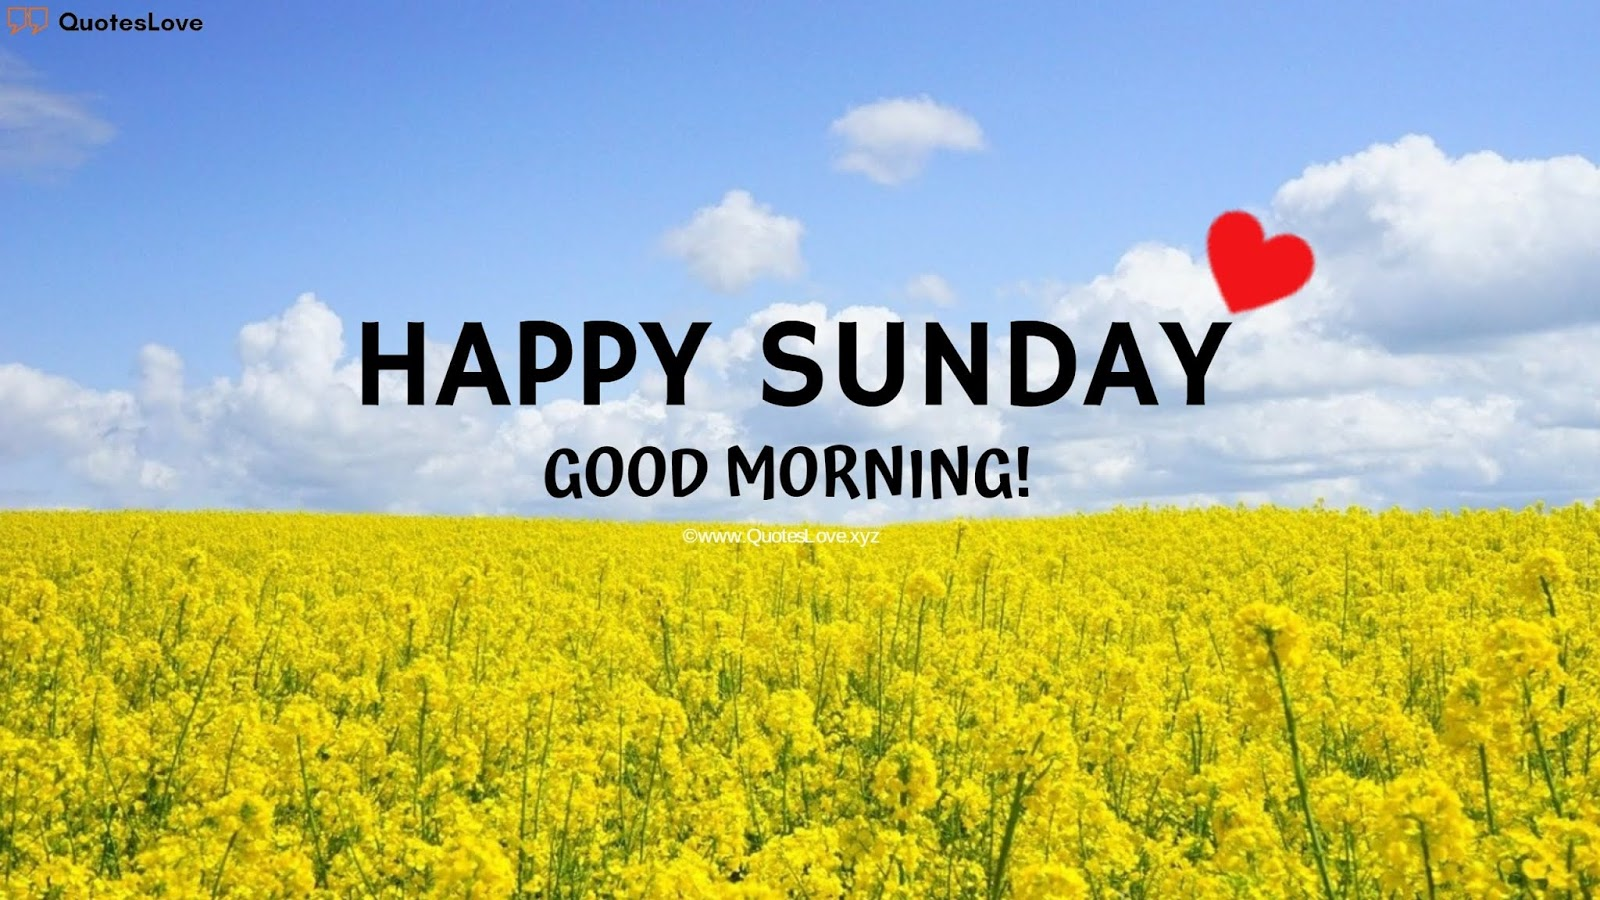 Sunday Good Morning Quotes To Celebrate Sunday Morning With Happiness & Joy